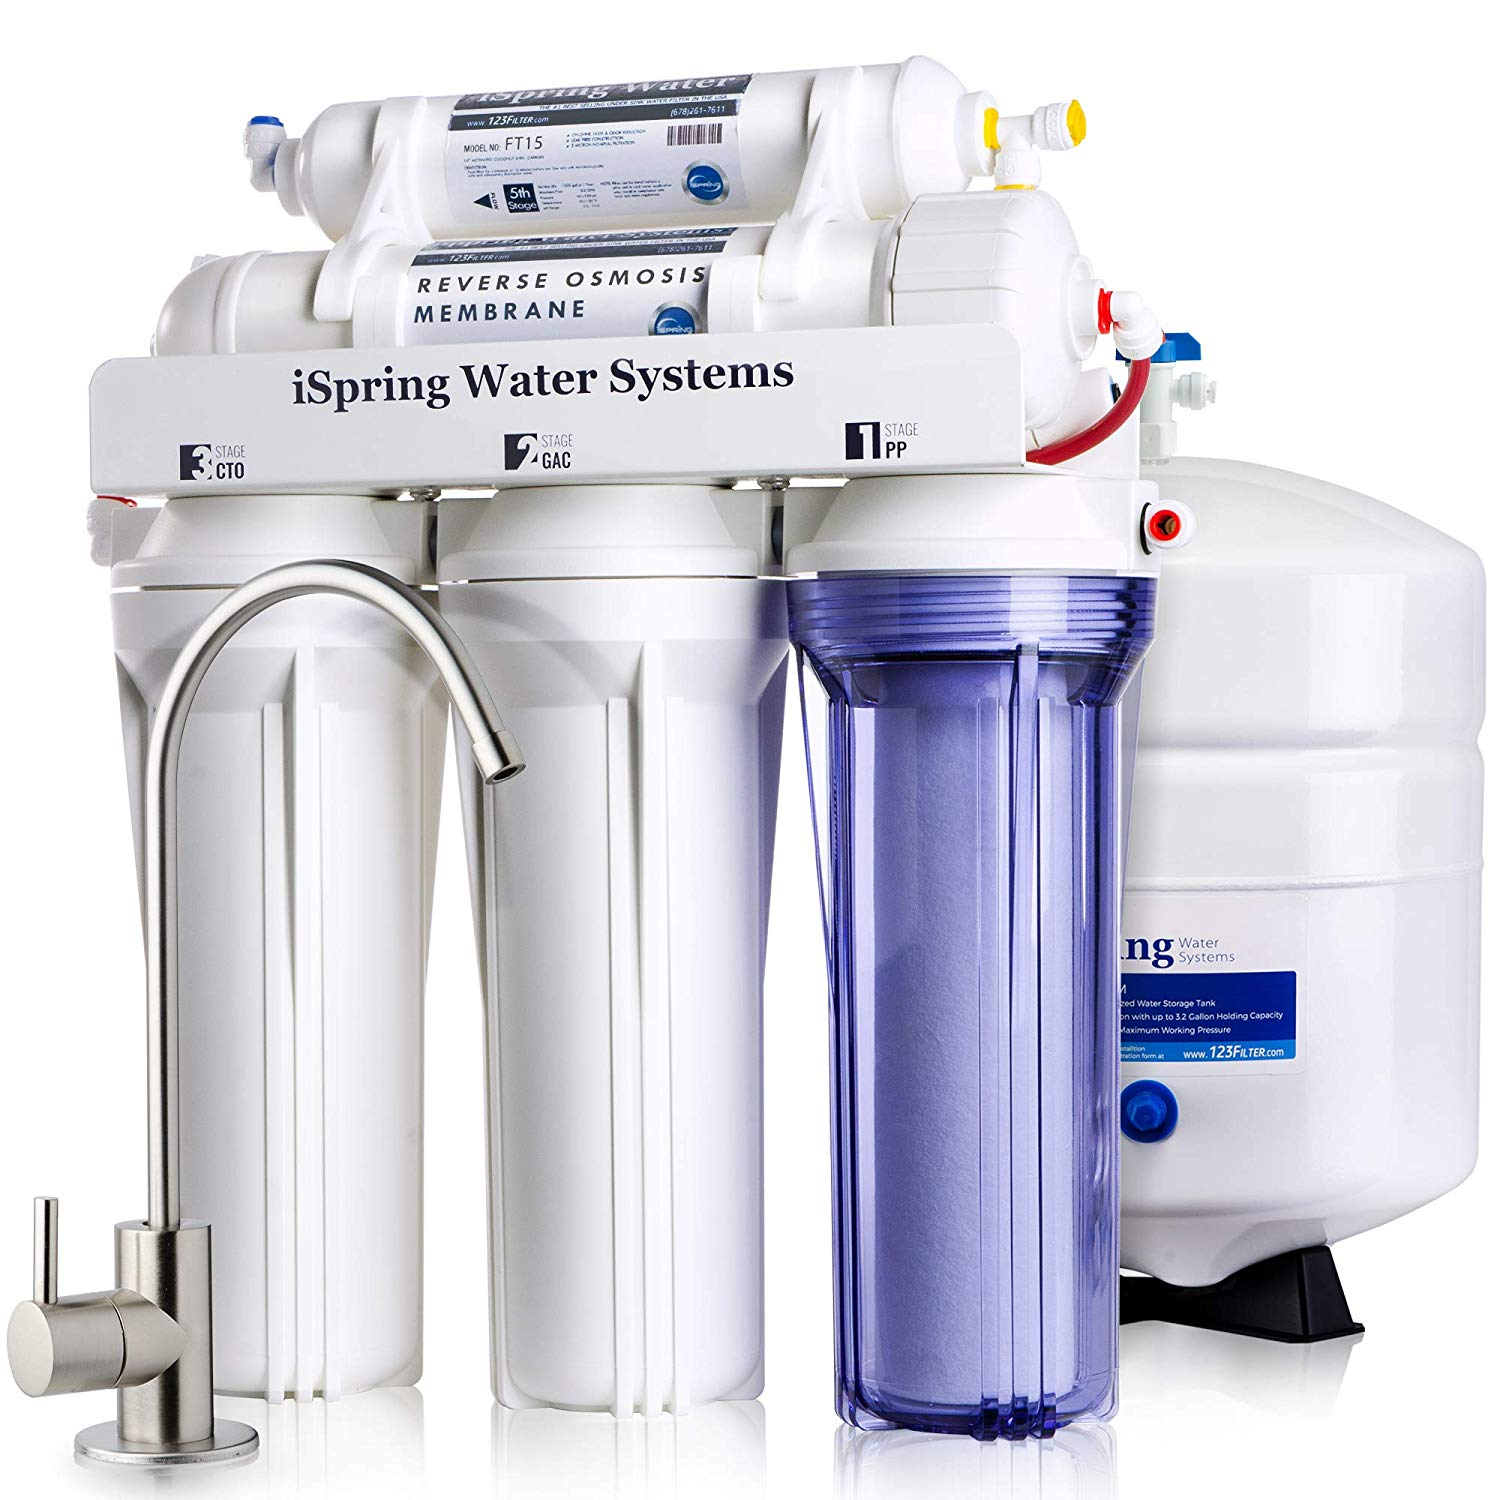 SimPure - 5 Stage Reverse Osmosis System and Ultimate Water Softener - Water Purifier